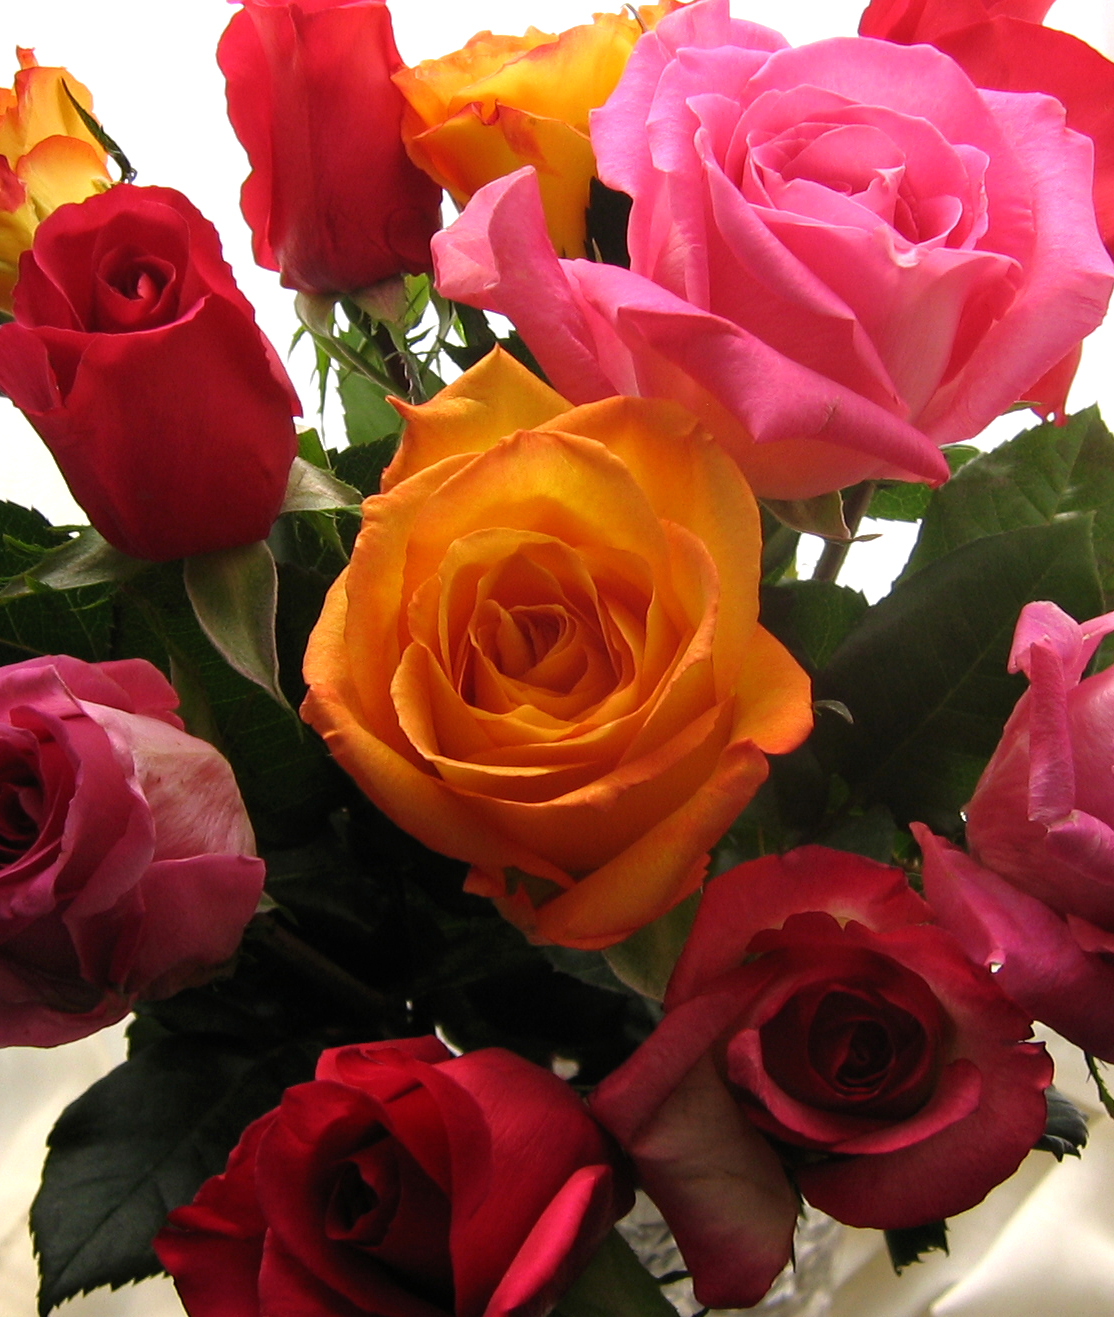 Traditions associated with roses